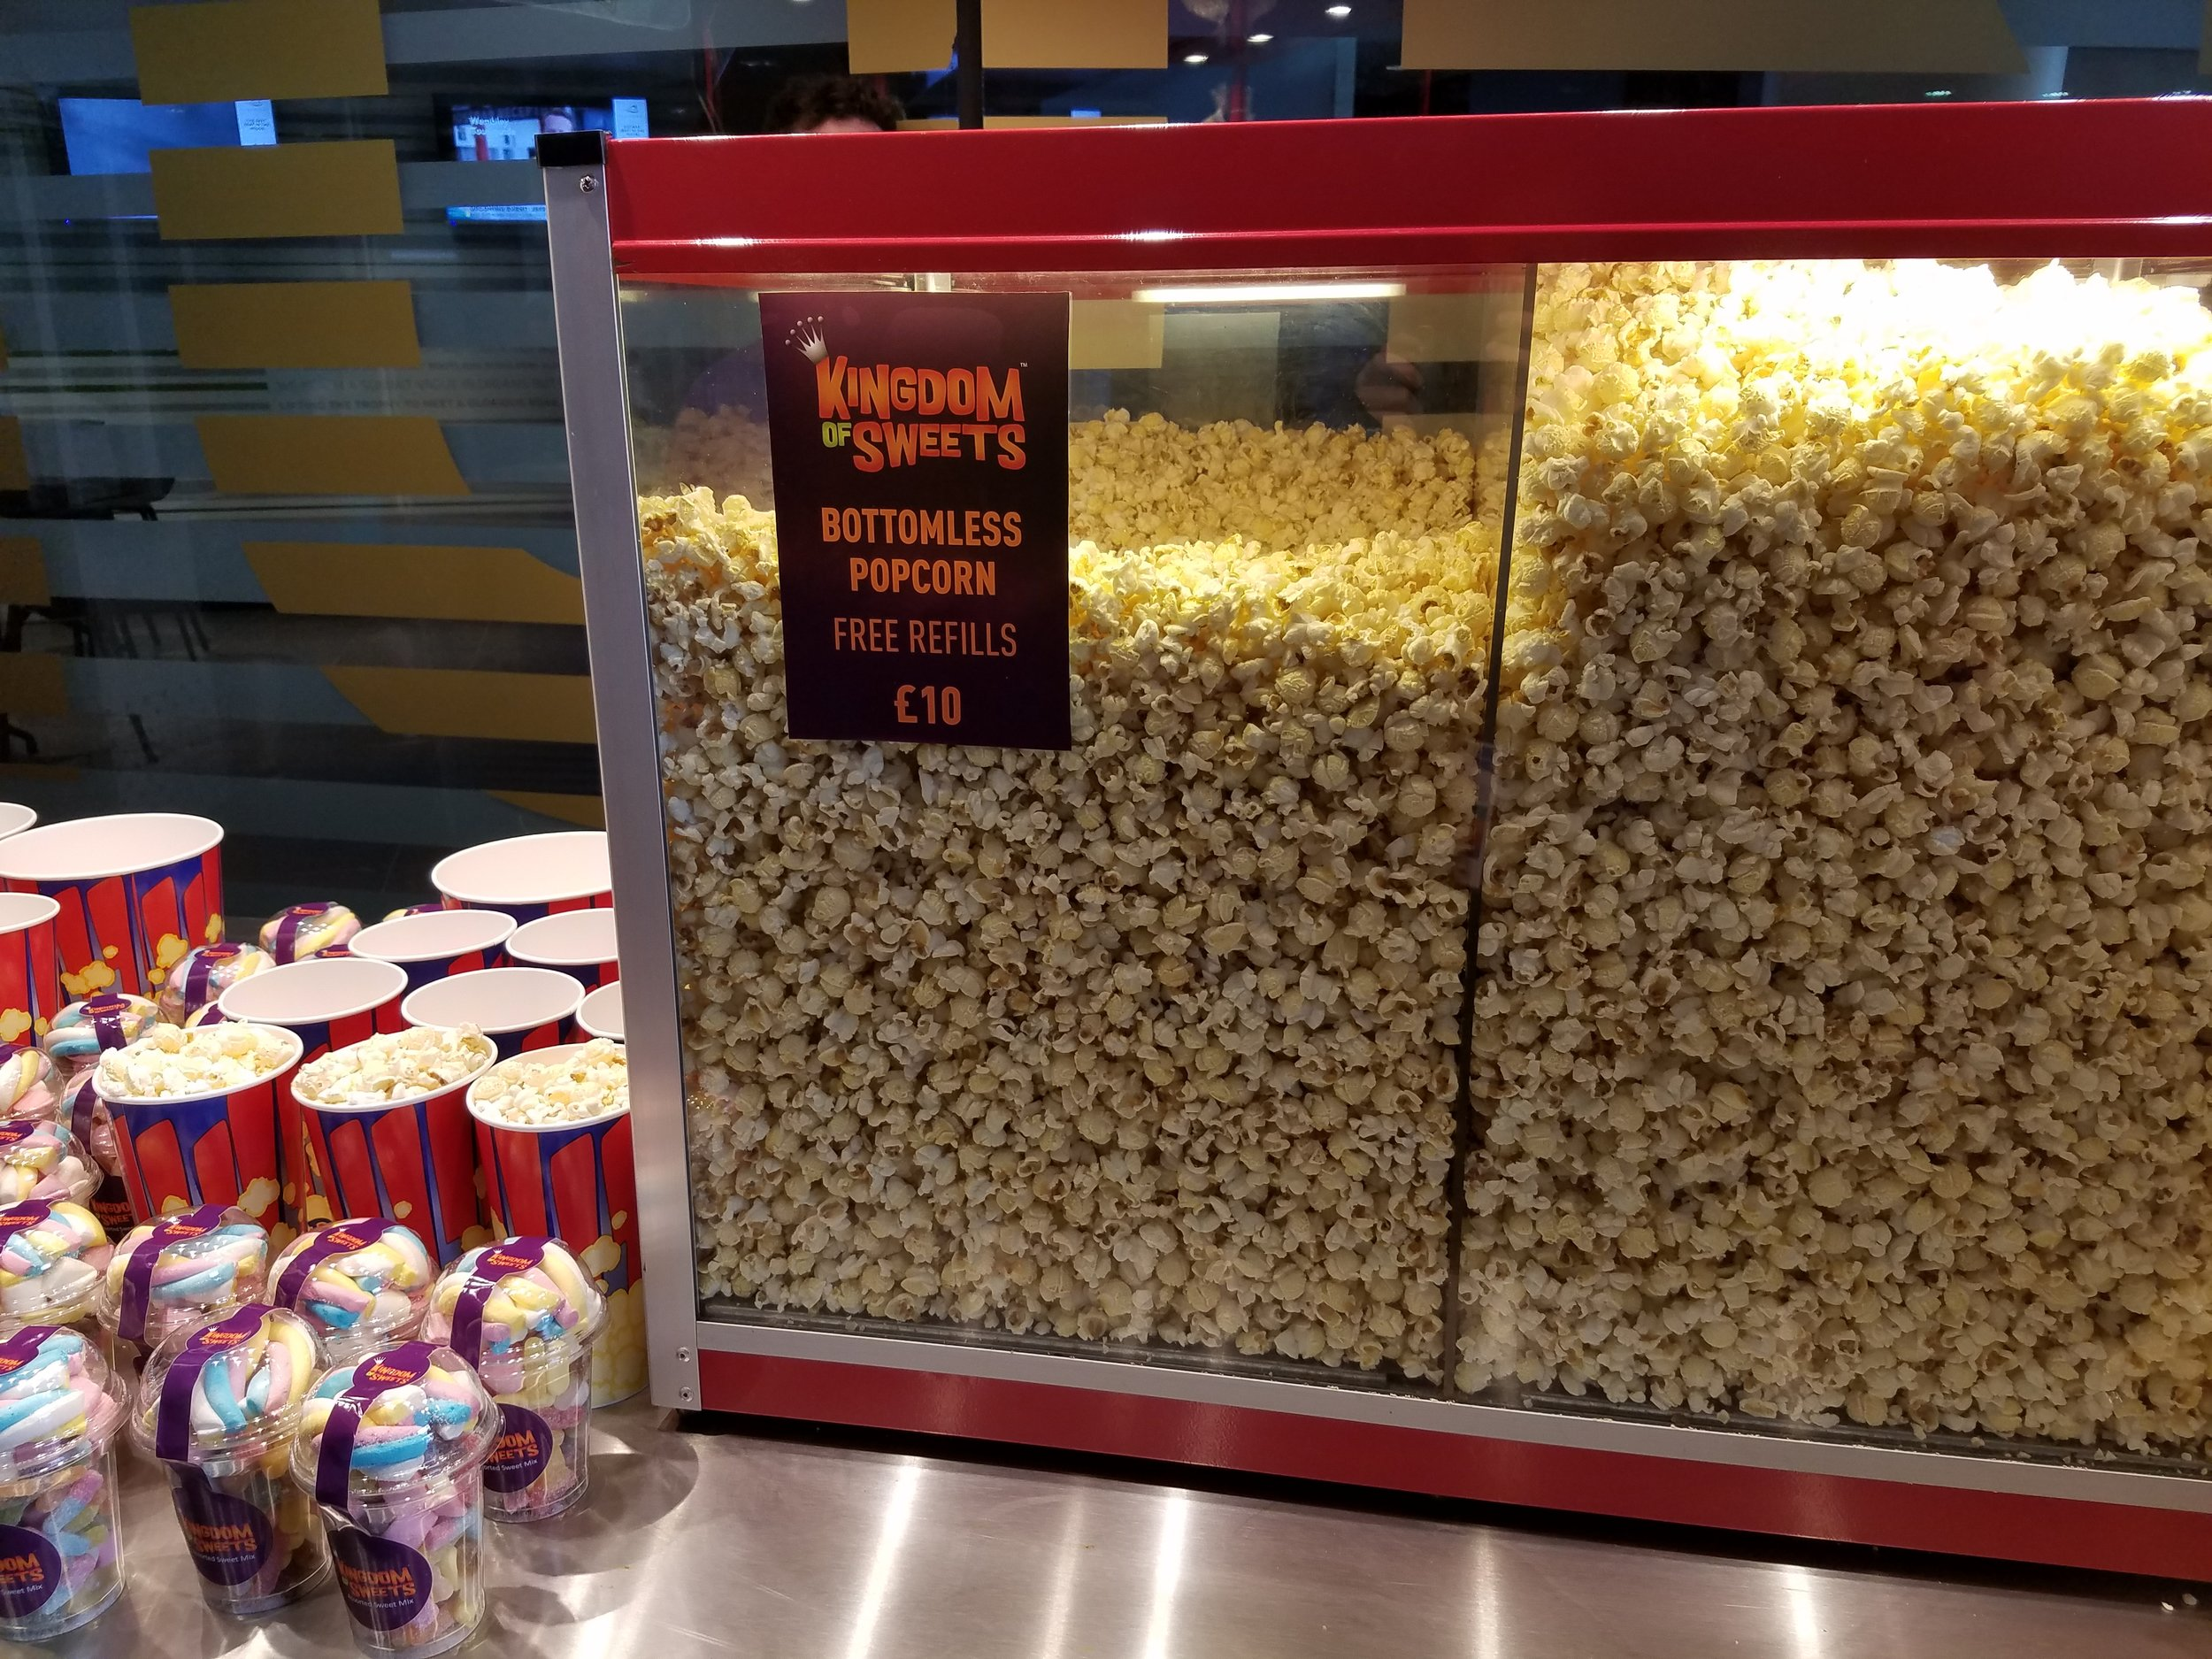 Bottomless popcorn is also available at Wembley Stadium.